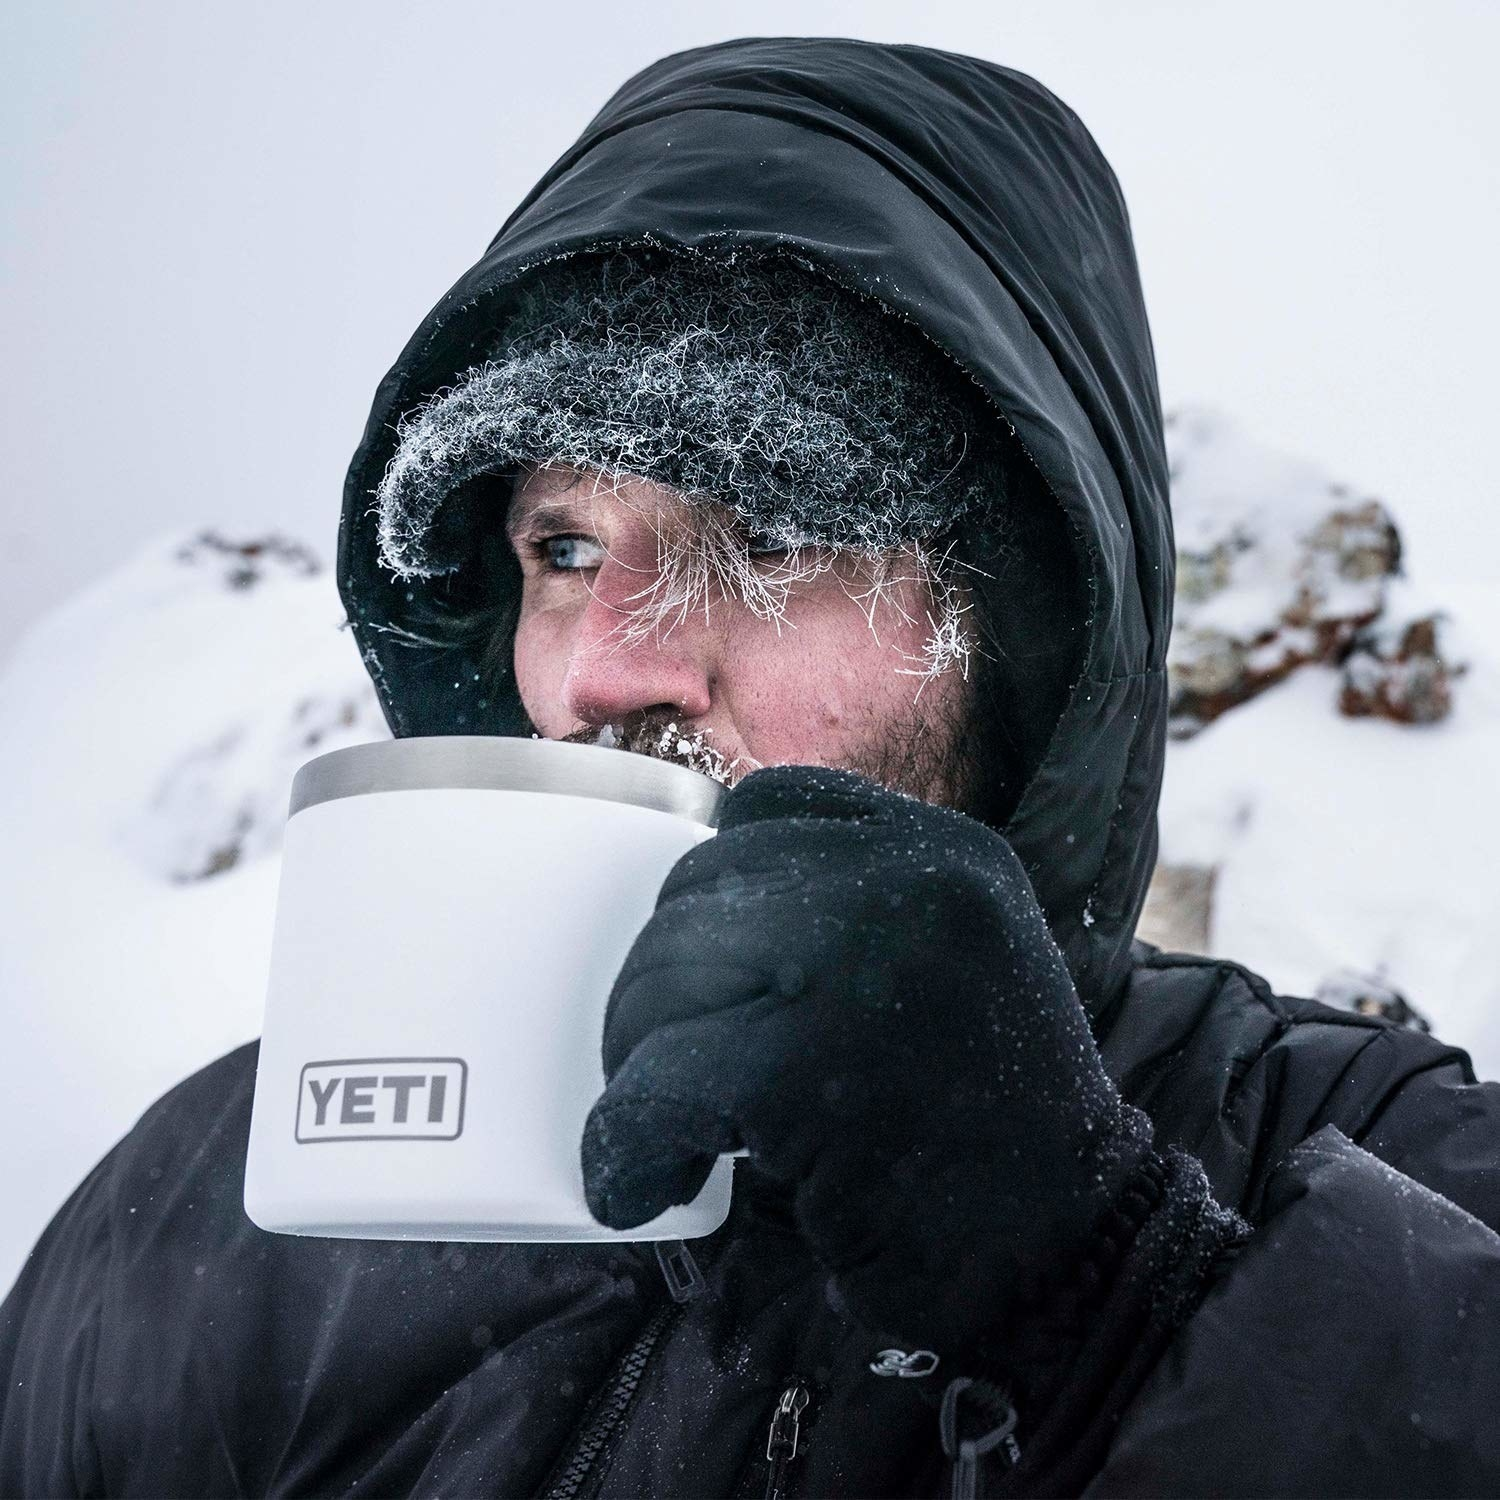 model in the snowy outdoors drinking from a white mug